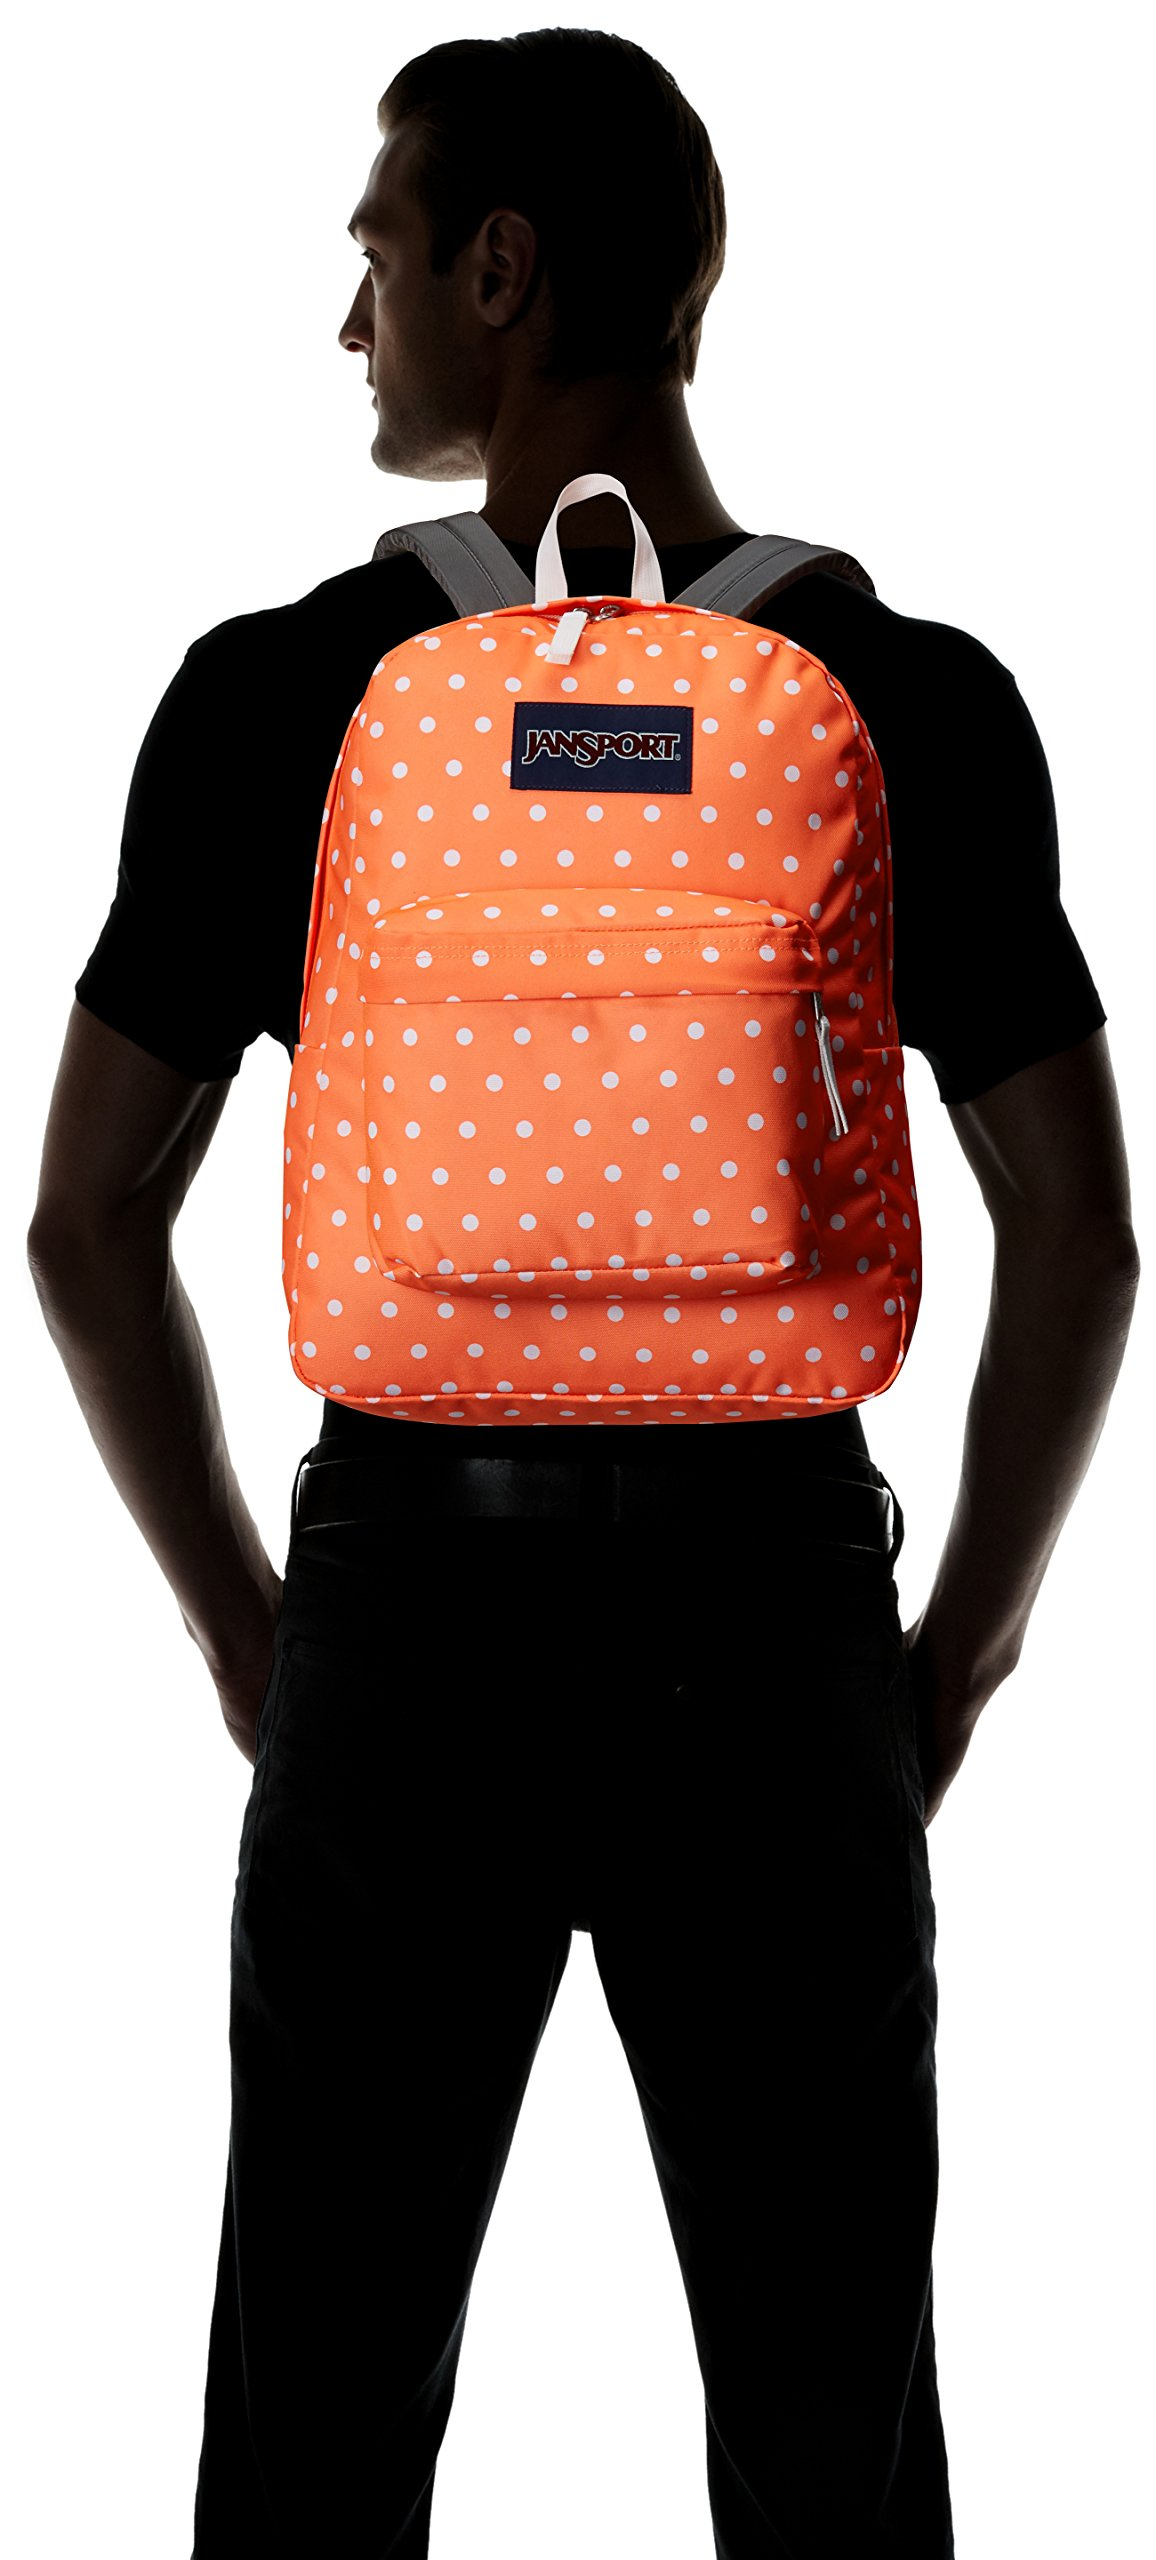 JanSport Superbreak, Tahitian Orange/White Dots, One Size by JanSport (Image #4)